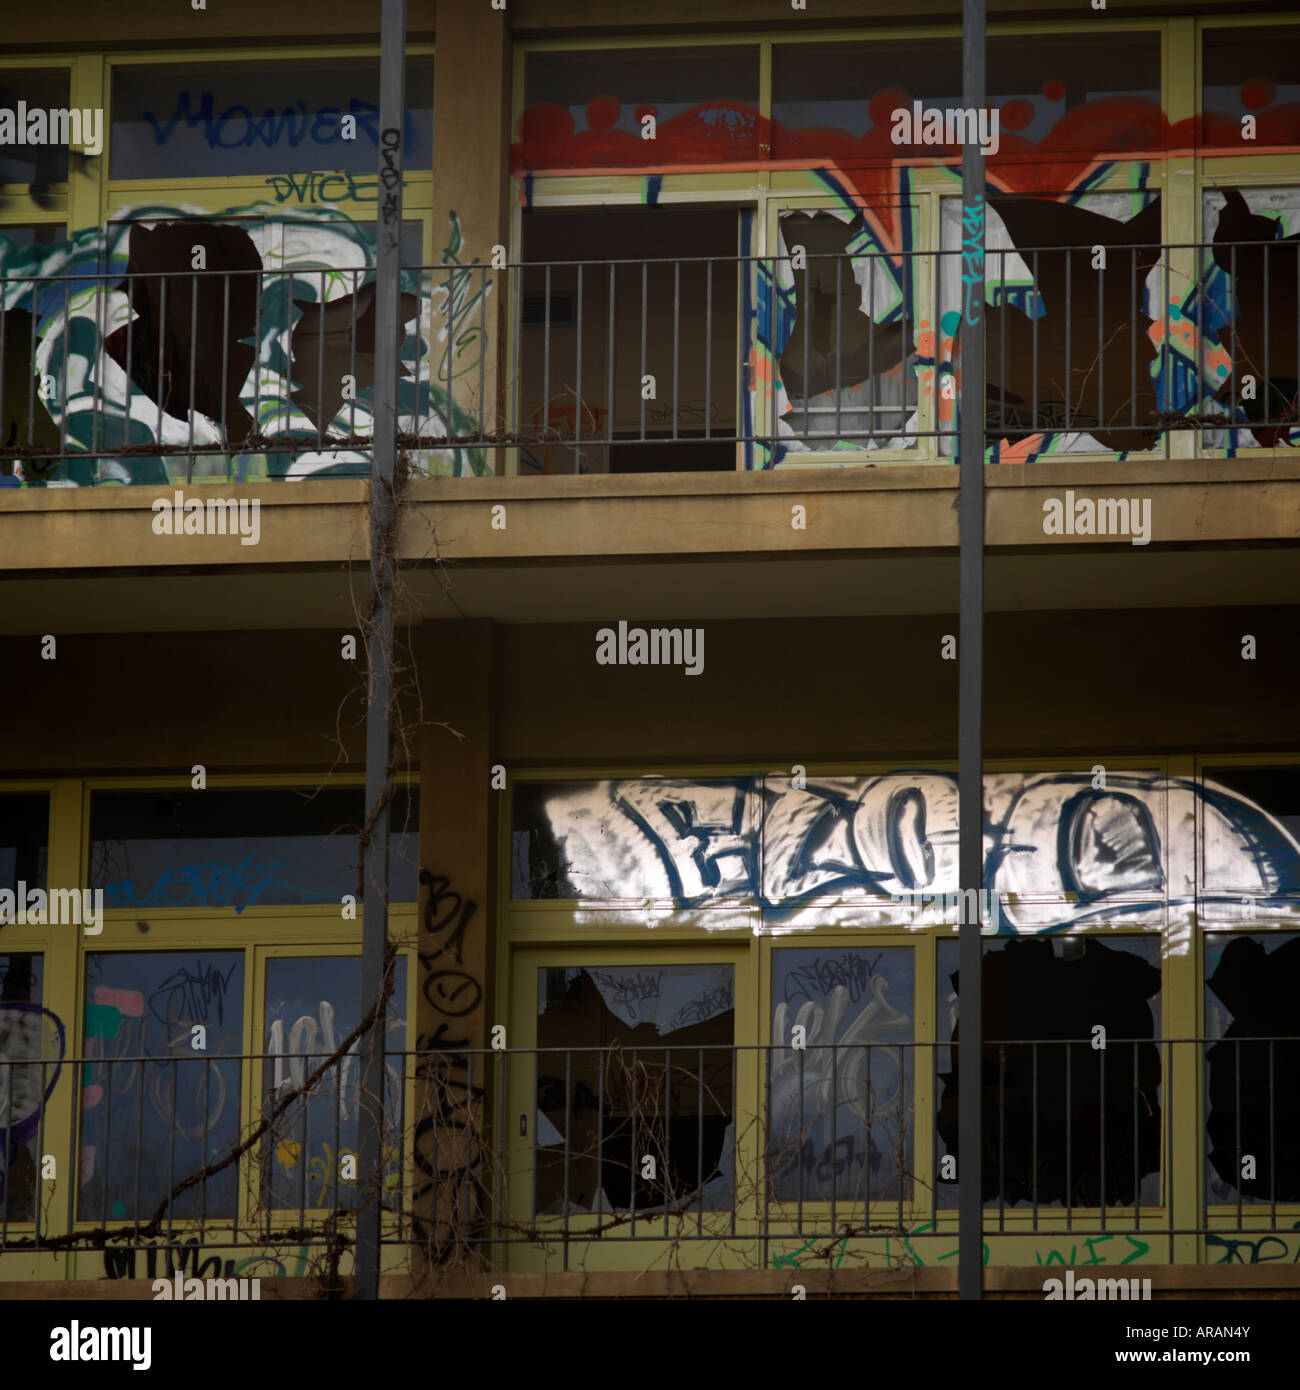 destroyed hospital with graffiti- the victim of government funding cuts and youth crime - Stock Image